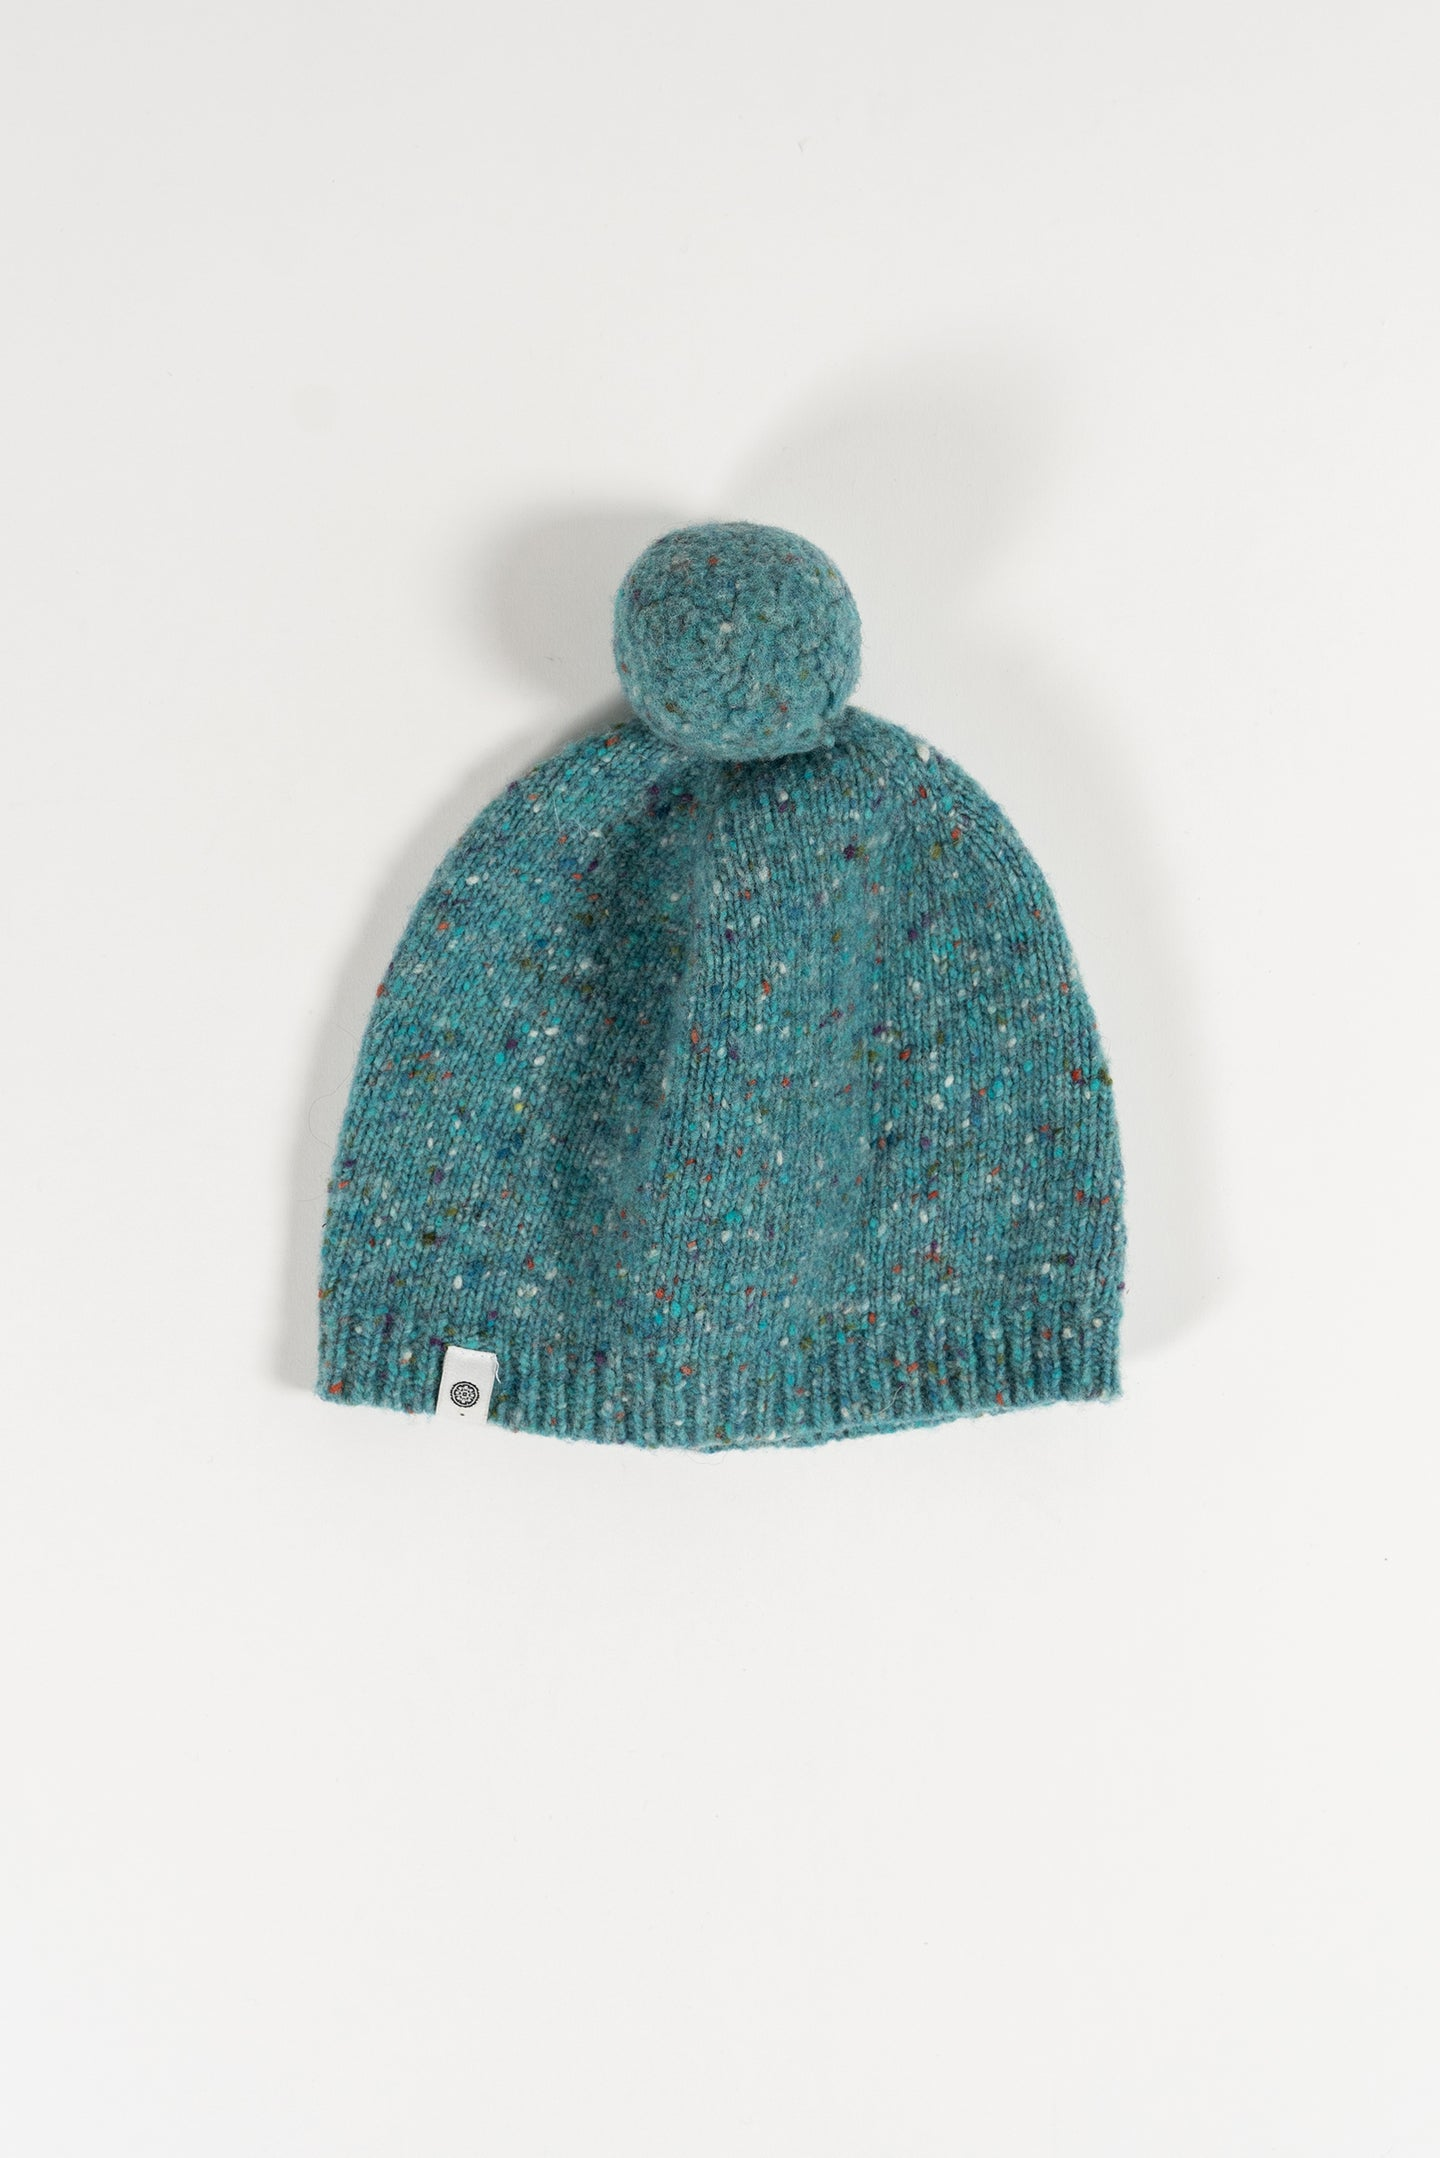 Dúskur Childrens hat — Blue